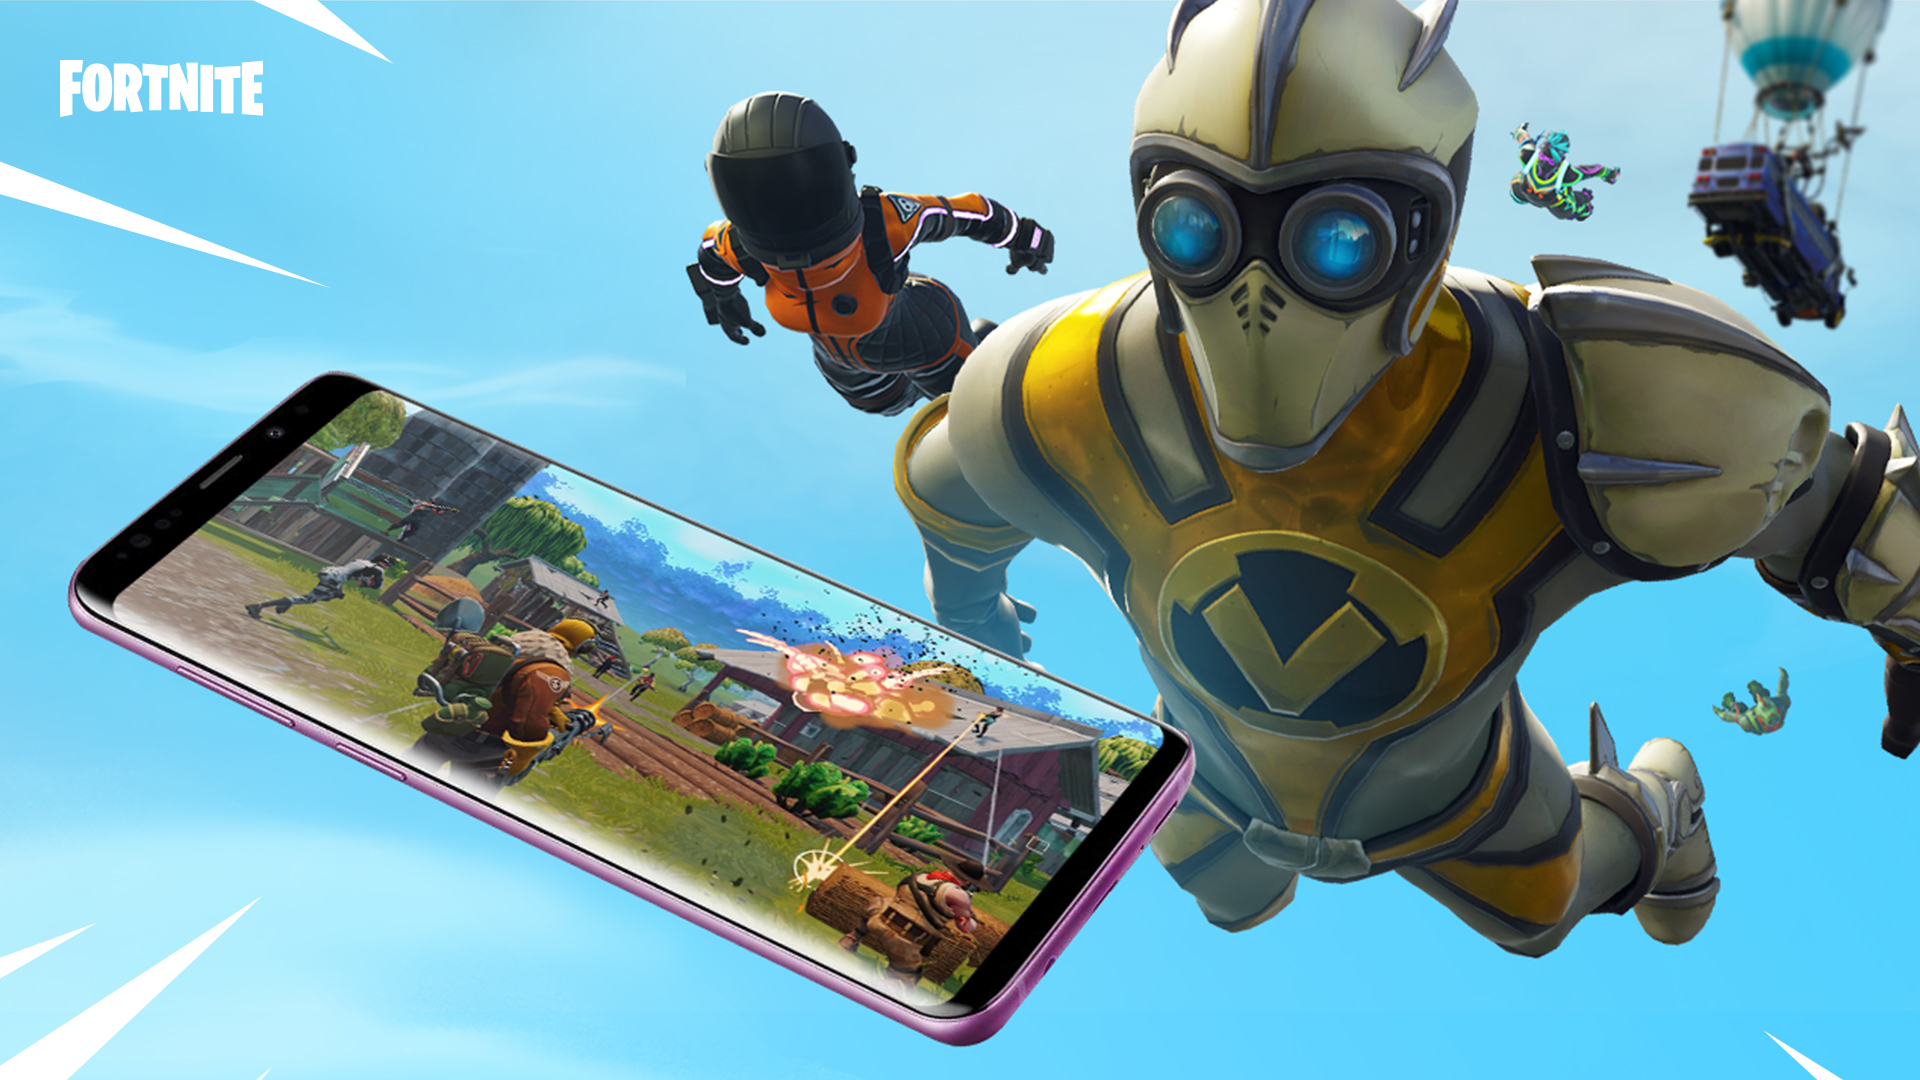 Fortnite for android s9